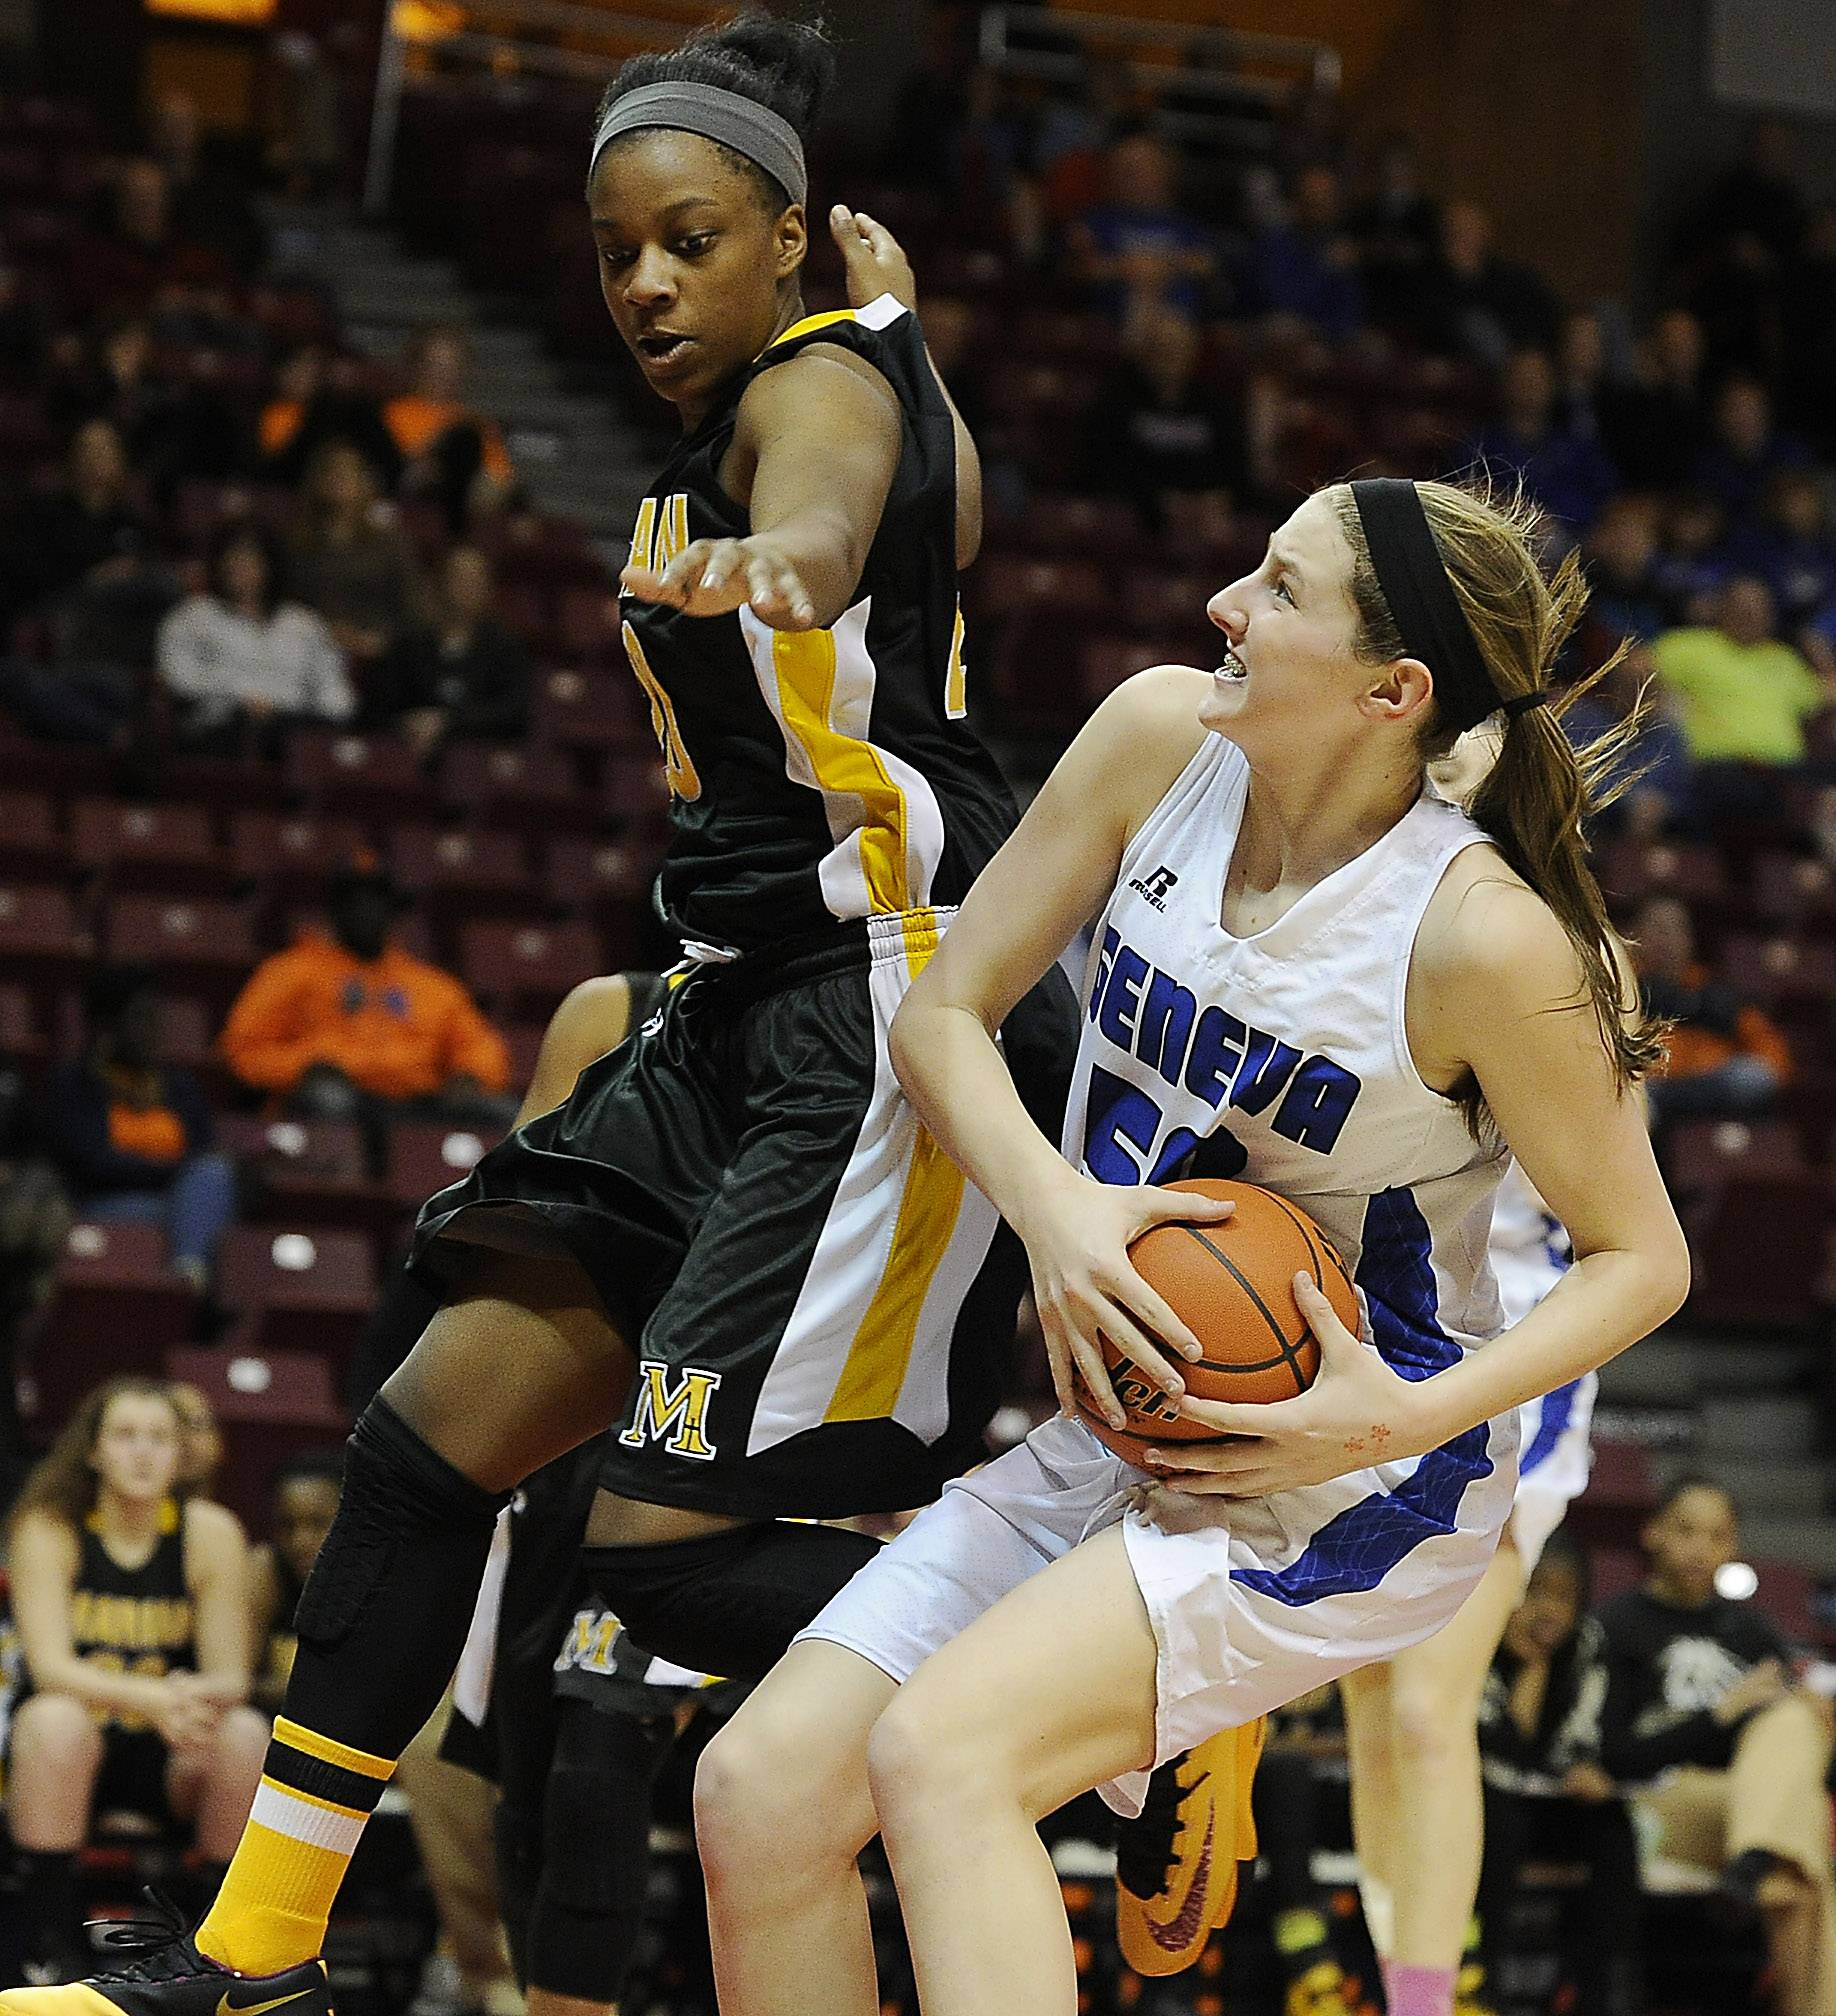 Geneva's Grace Loberg powers her way past Marian Catholic's Dajhae Mullins in the first half of the Class 4A third-place game in Normal on Saturday.